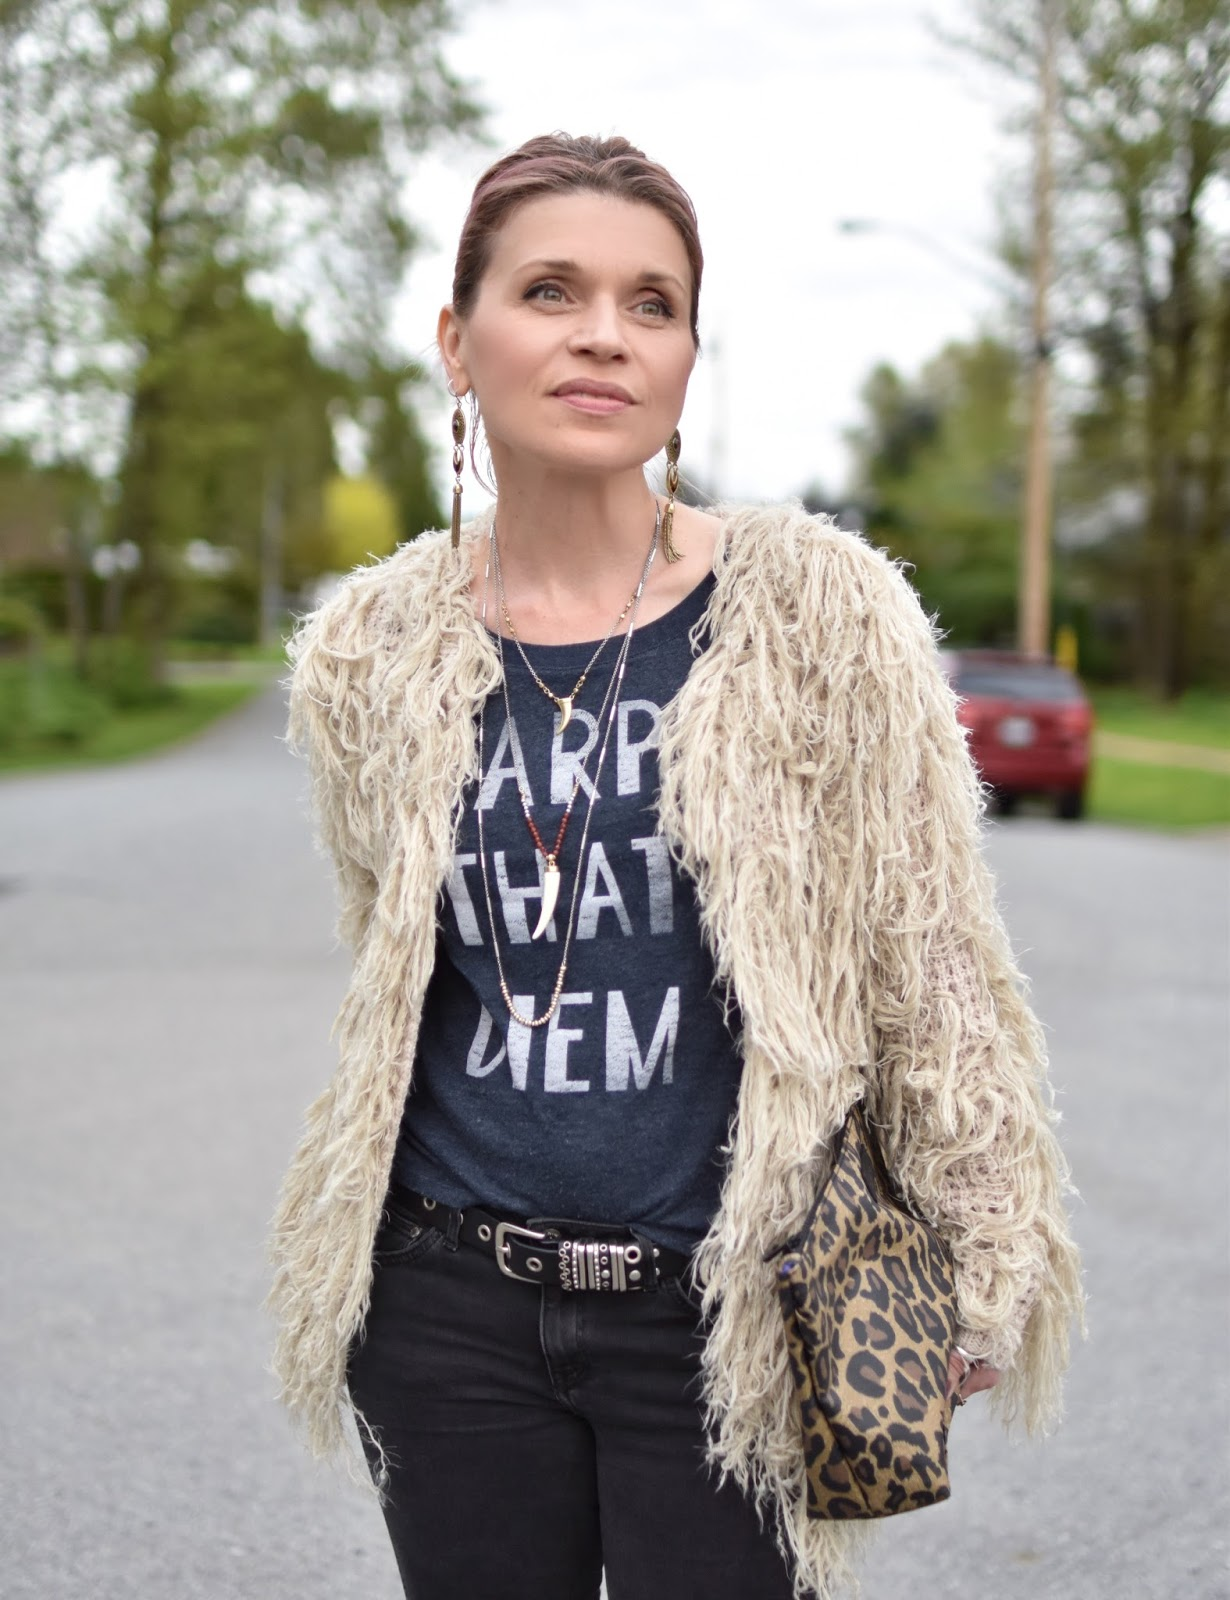 Monika Faulkner outfit inspiration - black skinny jeans, graphic tee, shaggy cardigan, leopard-patterned pouch